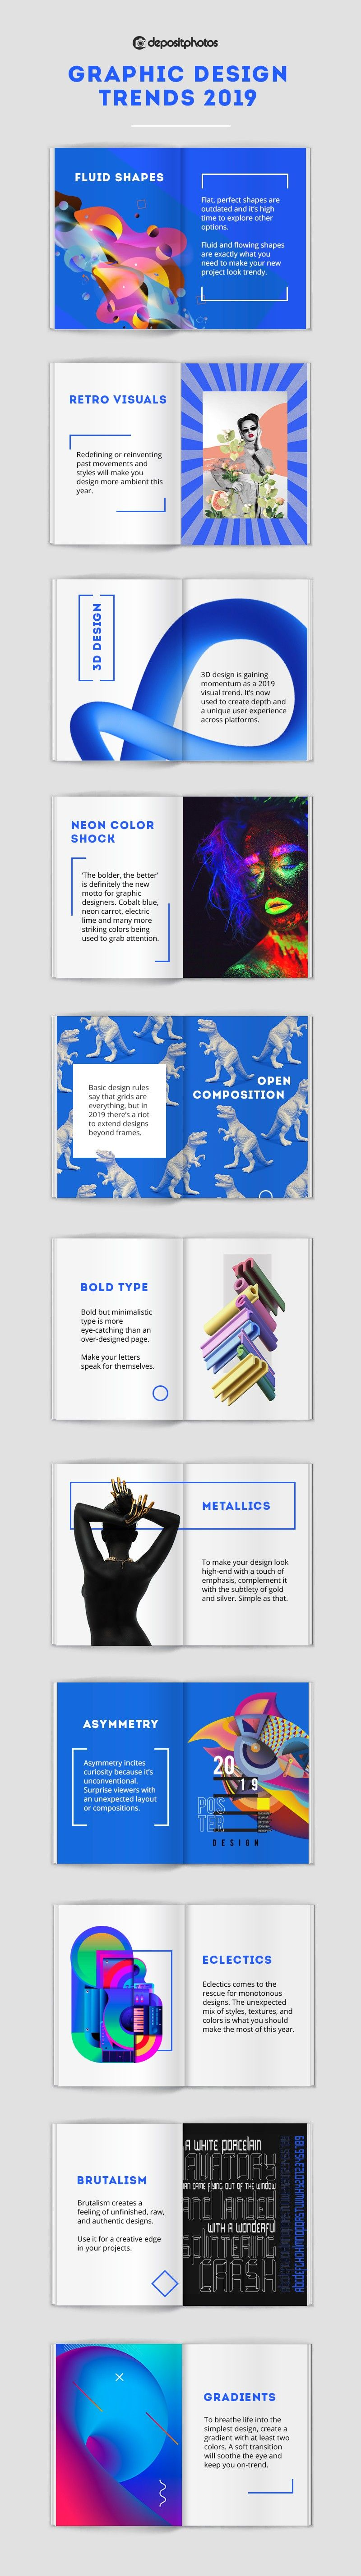 graphic design trends 2019 infographic by Depositphotos